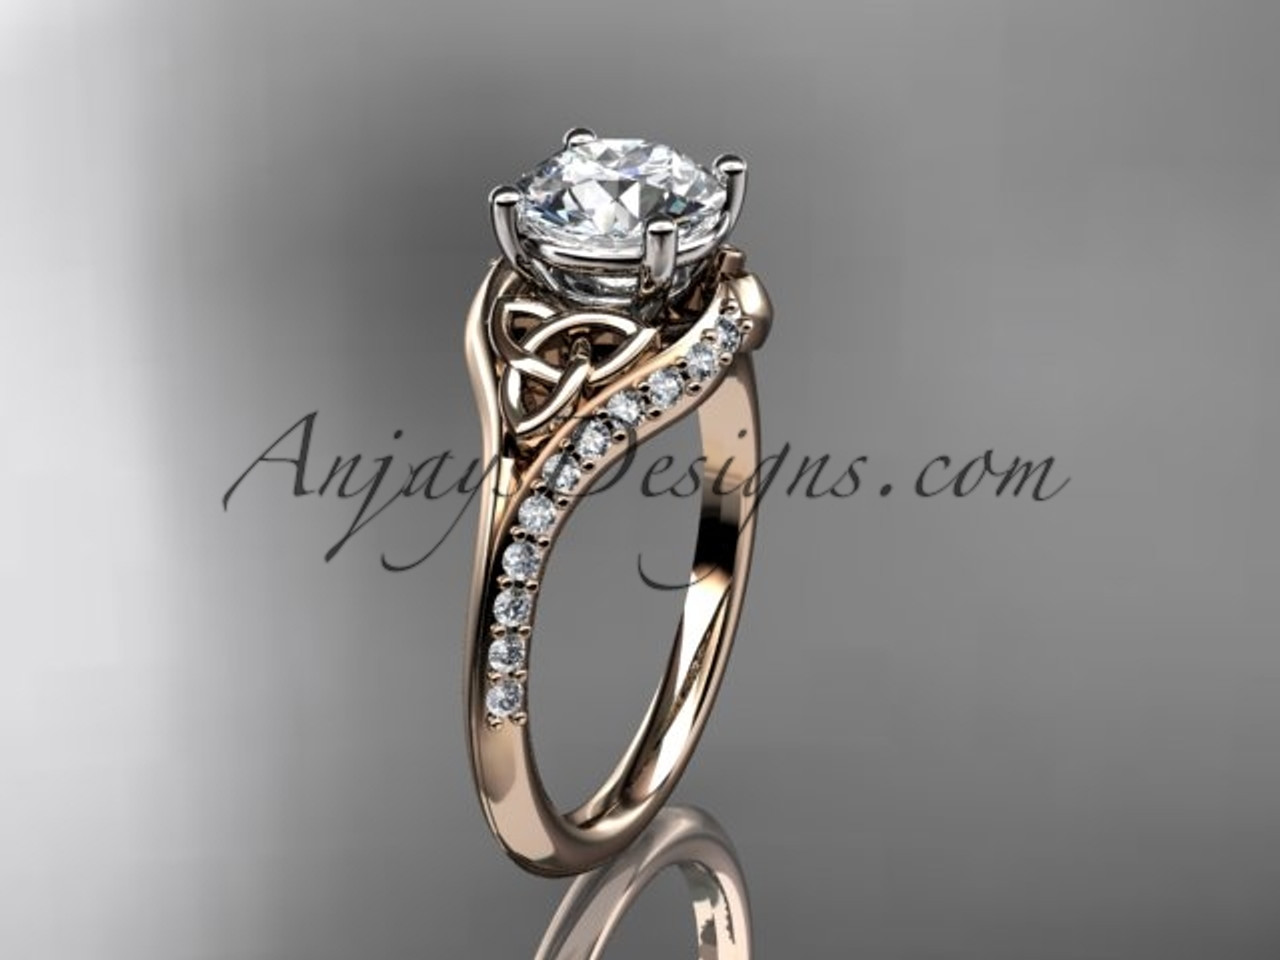 celtic rings ide ltd knot wedding love ring